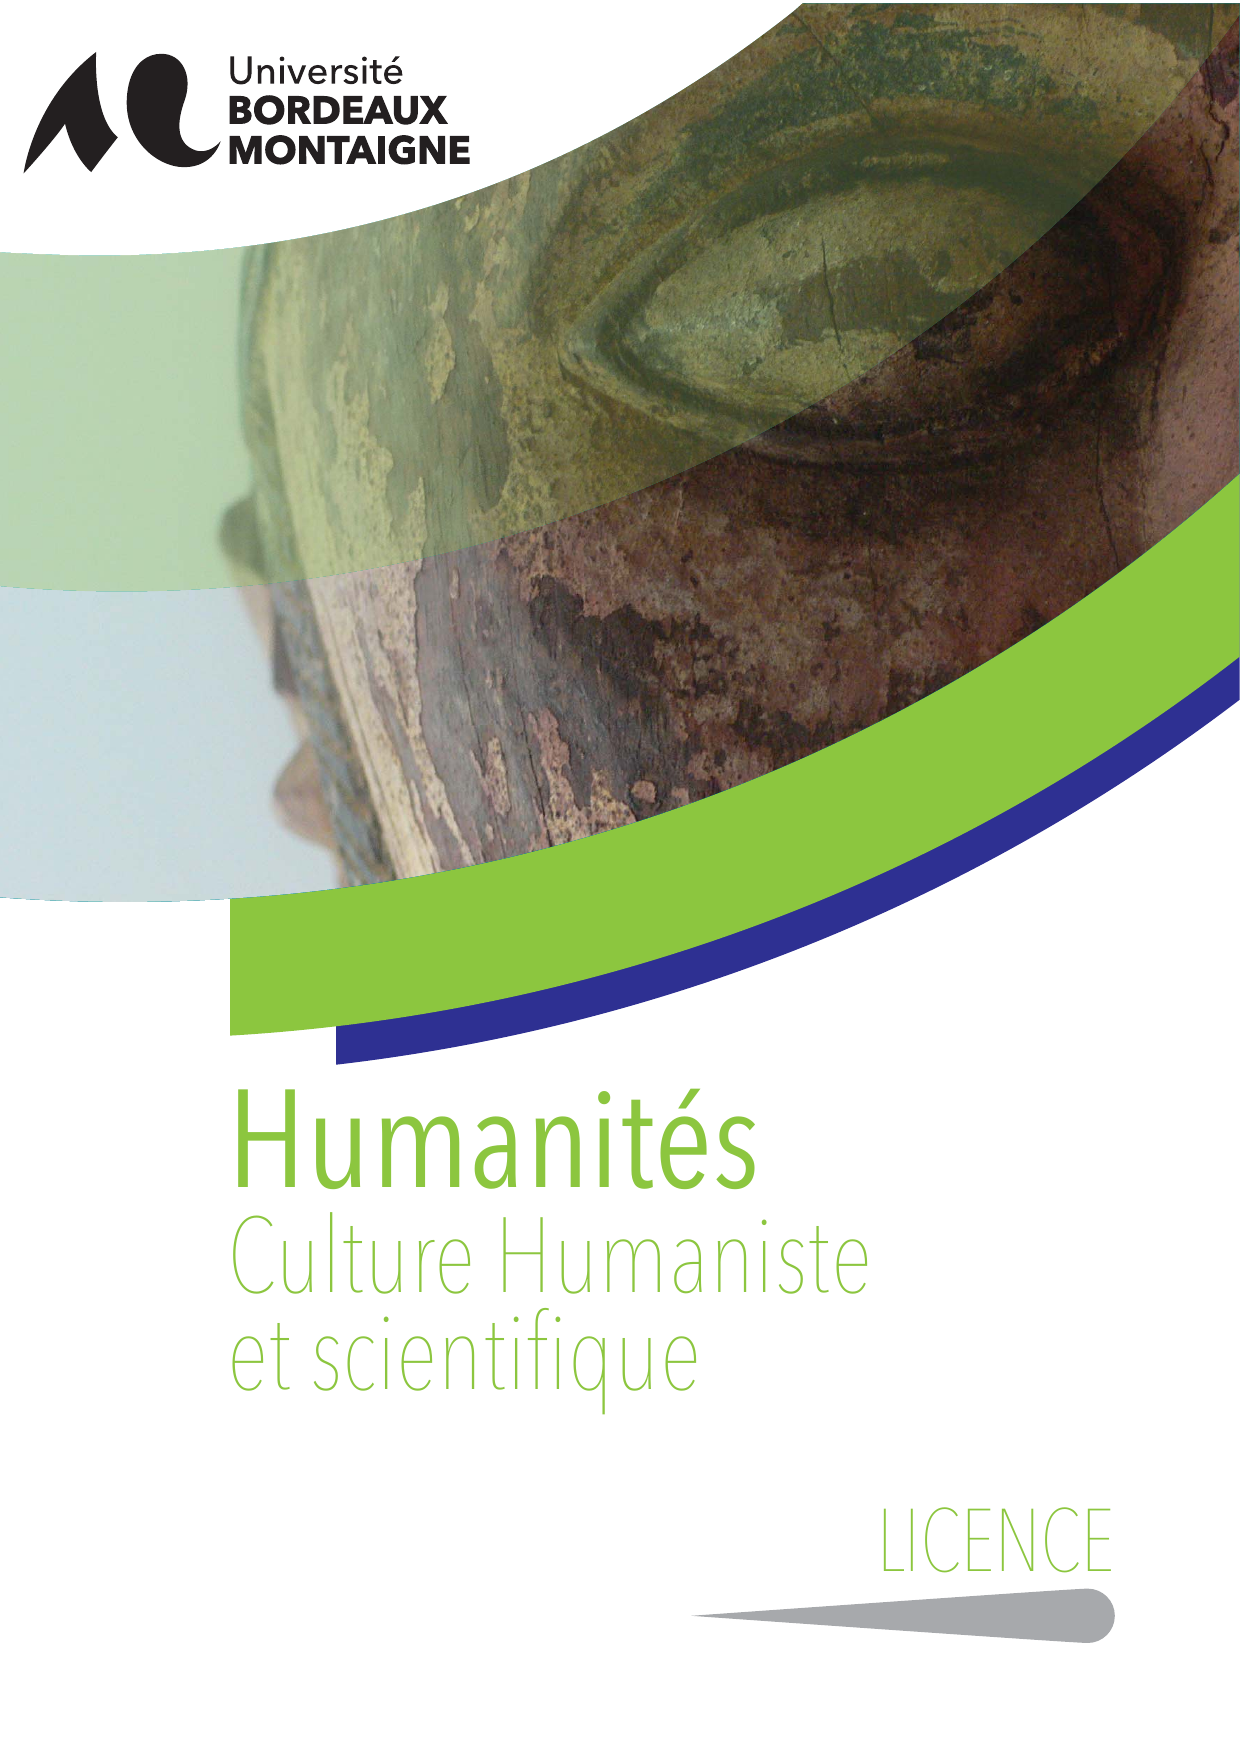 licence 3 culture humaniste et scientifique